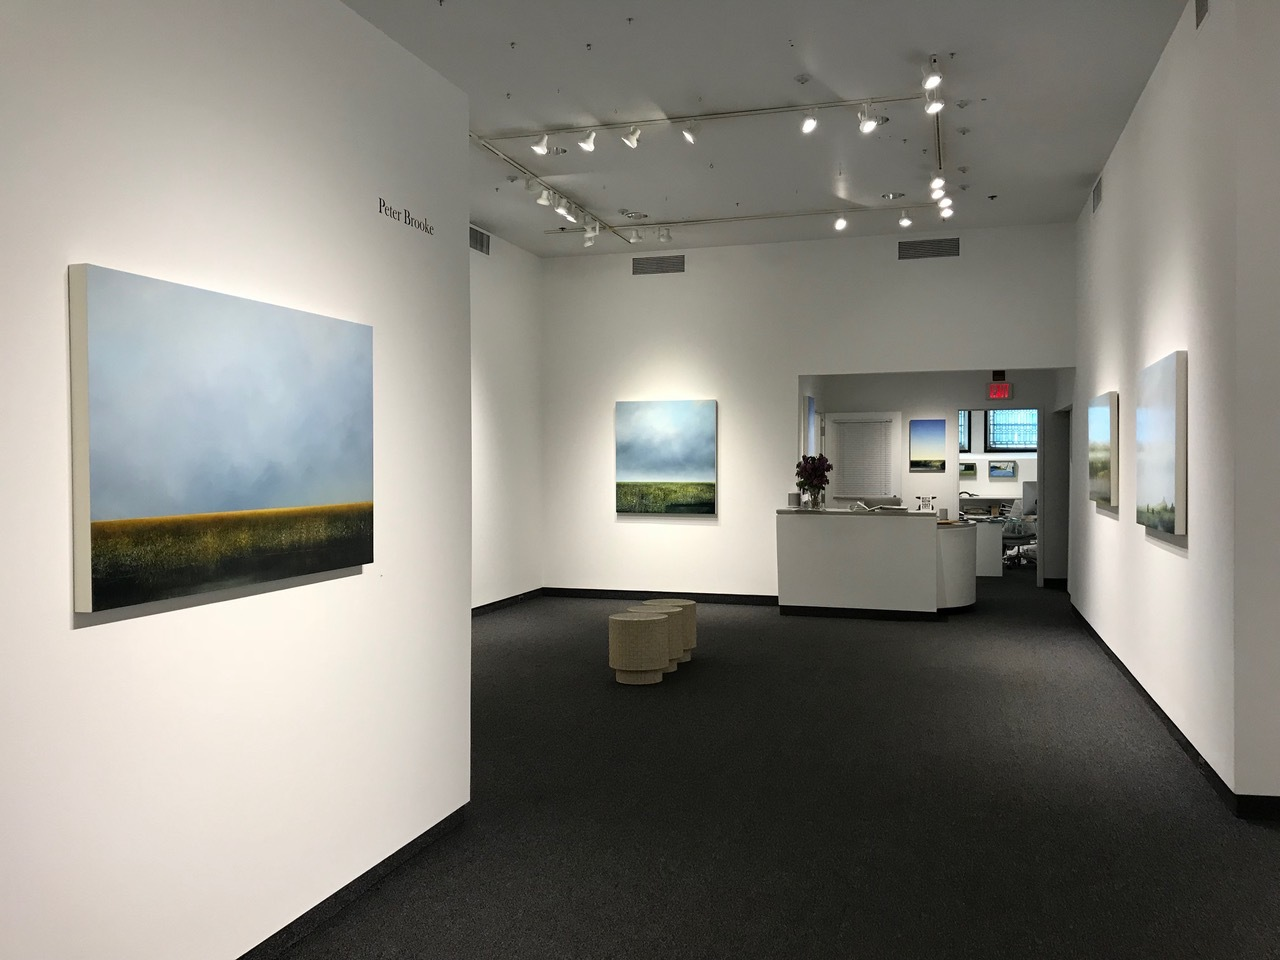 The best Boston art galleries